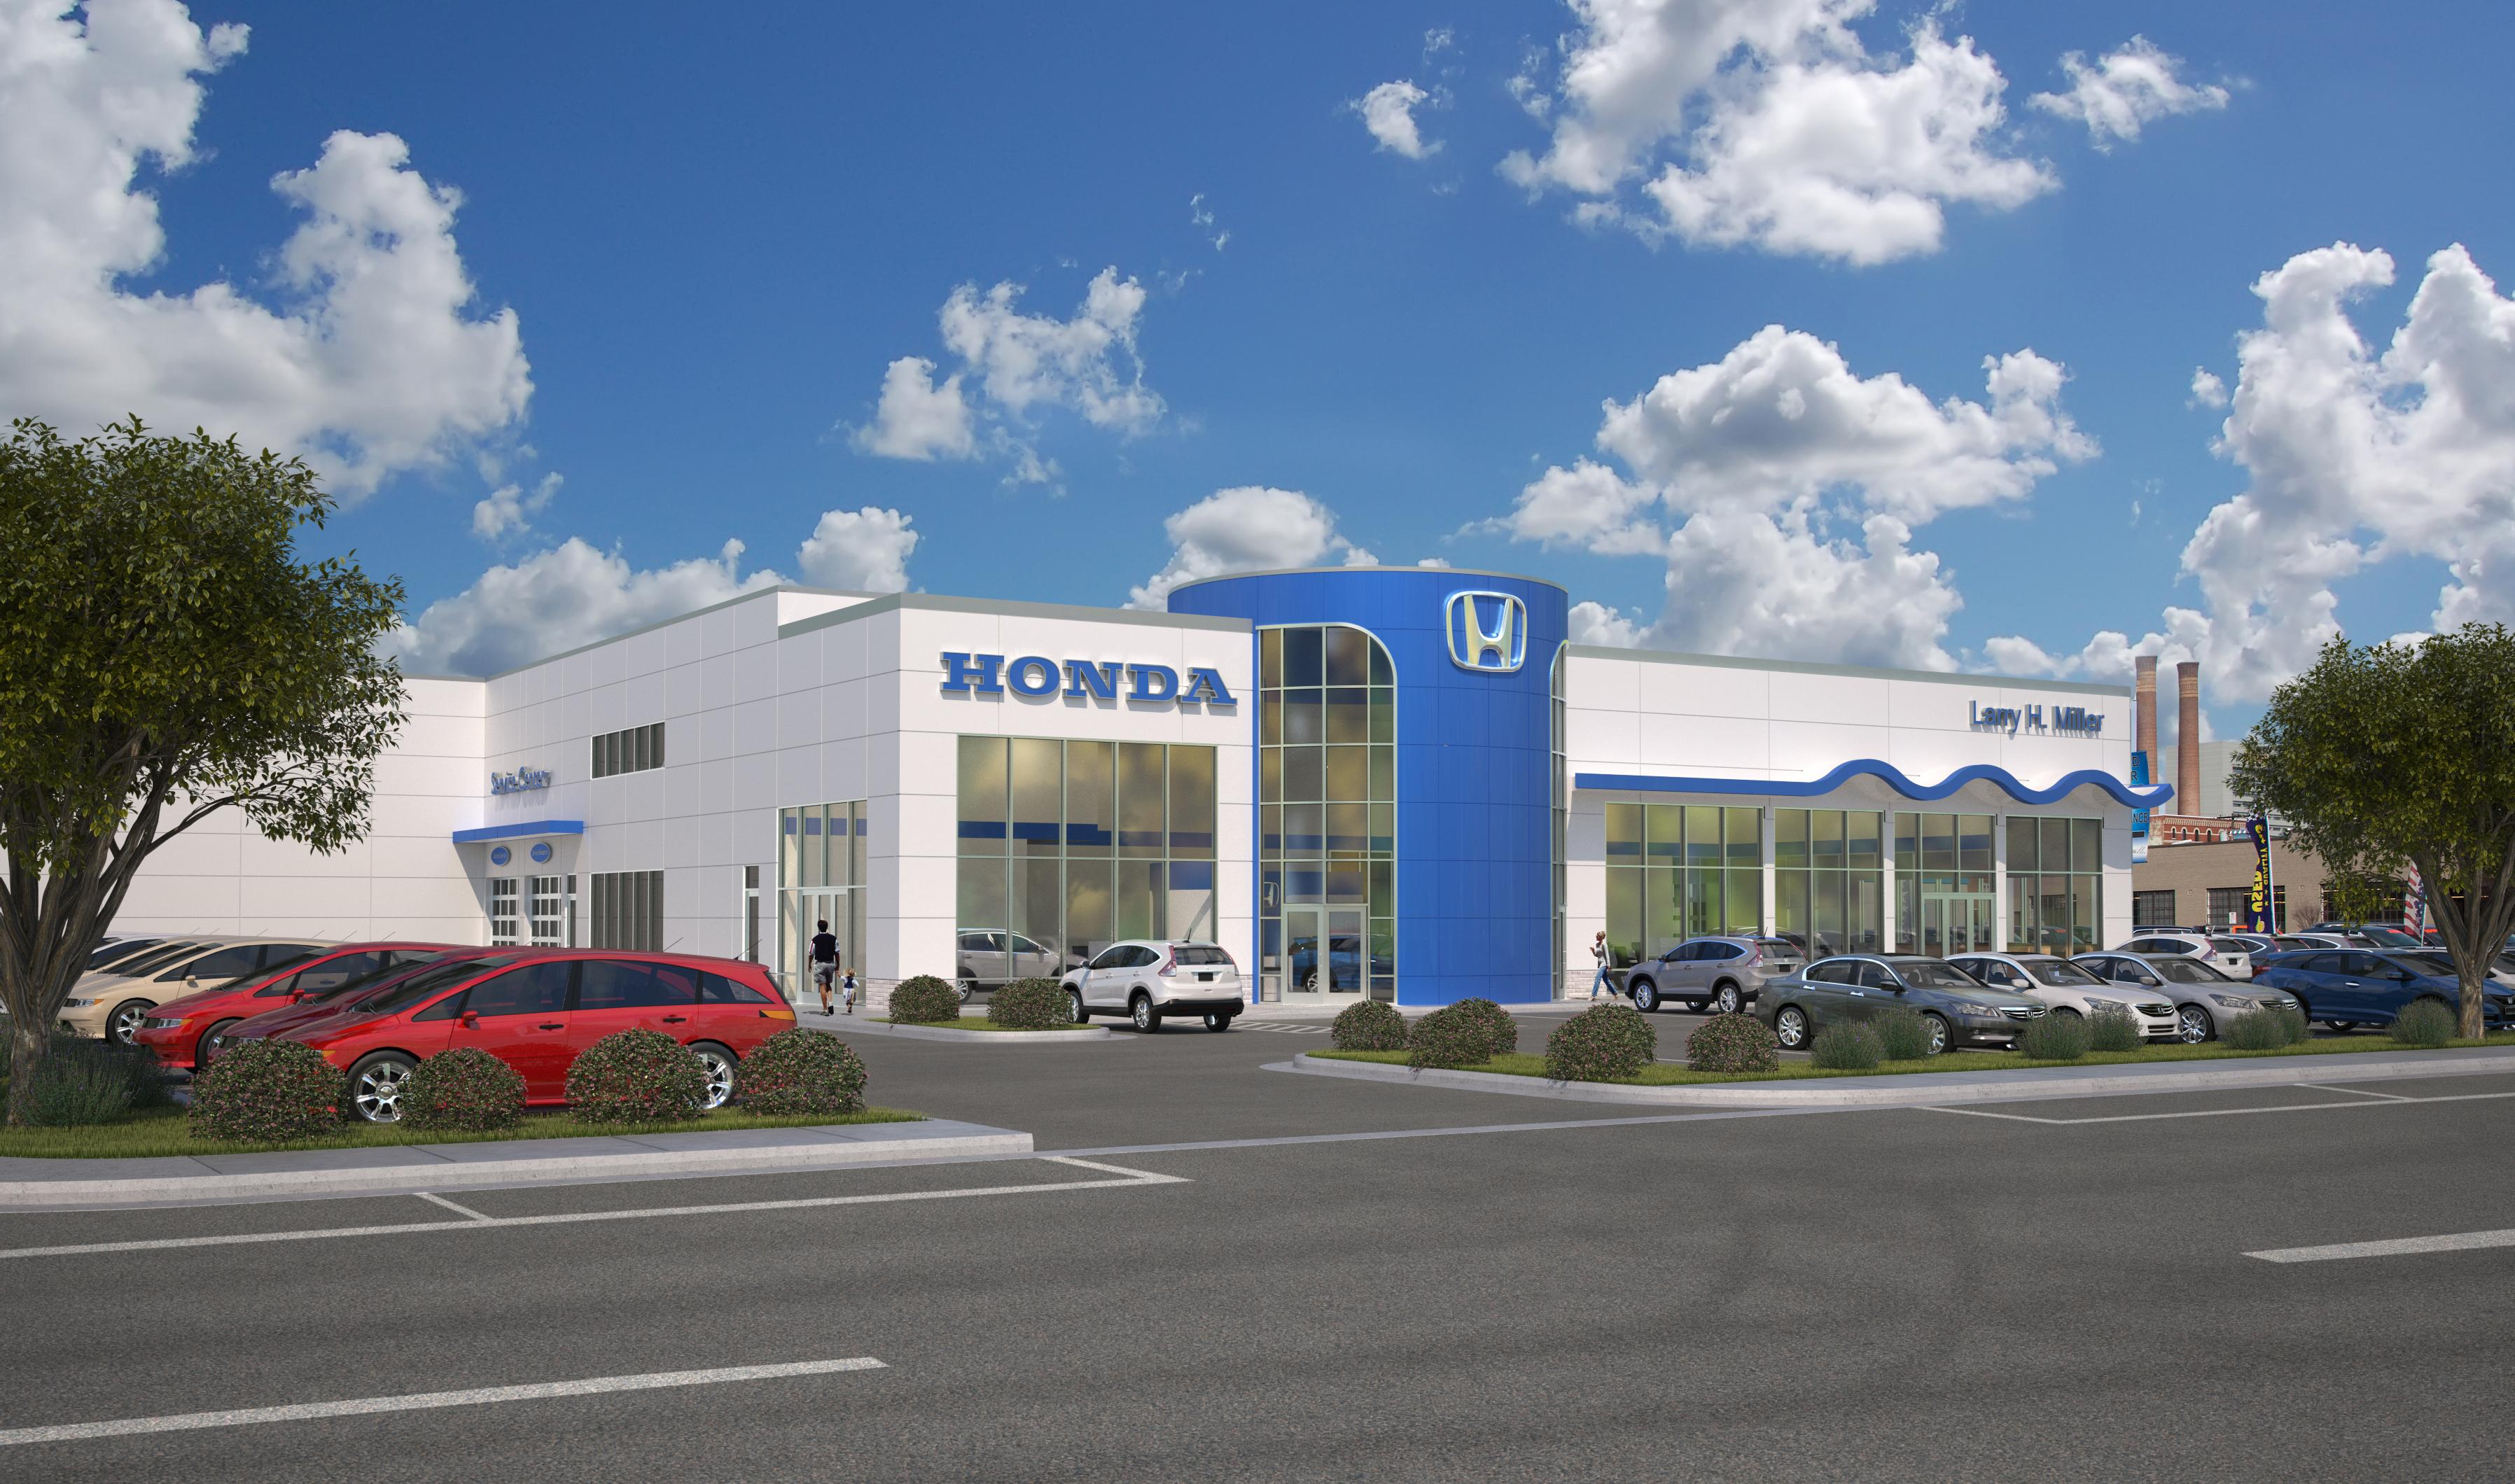 Larry H Miller Honda >> Downtown Spokane Auto Dealer Begins Construction On Honda Block